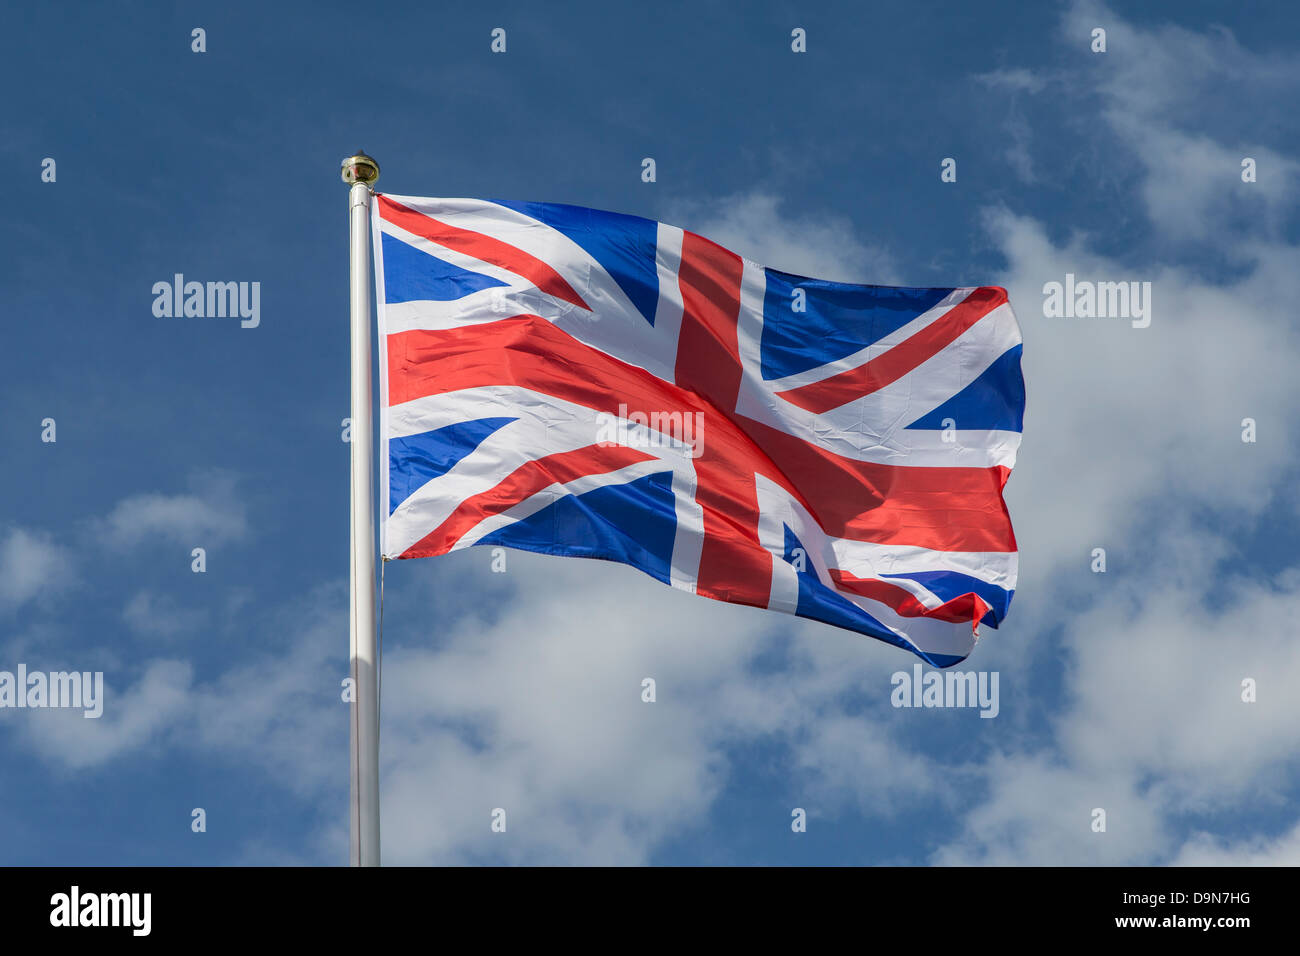 Union Jack Flag on Flagpole Blowing in Wind - Stock Image